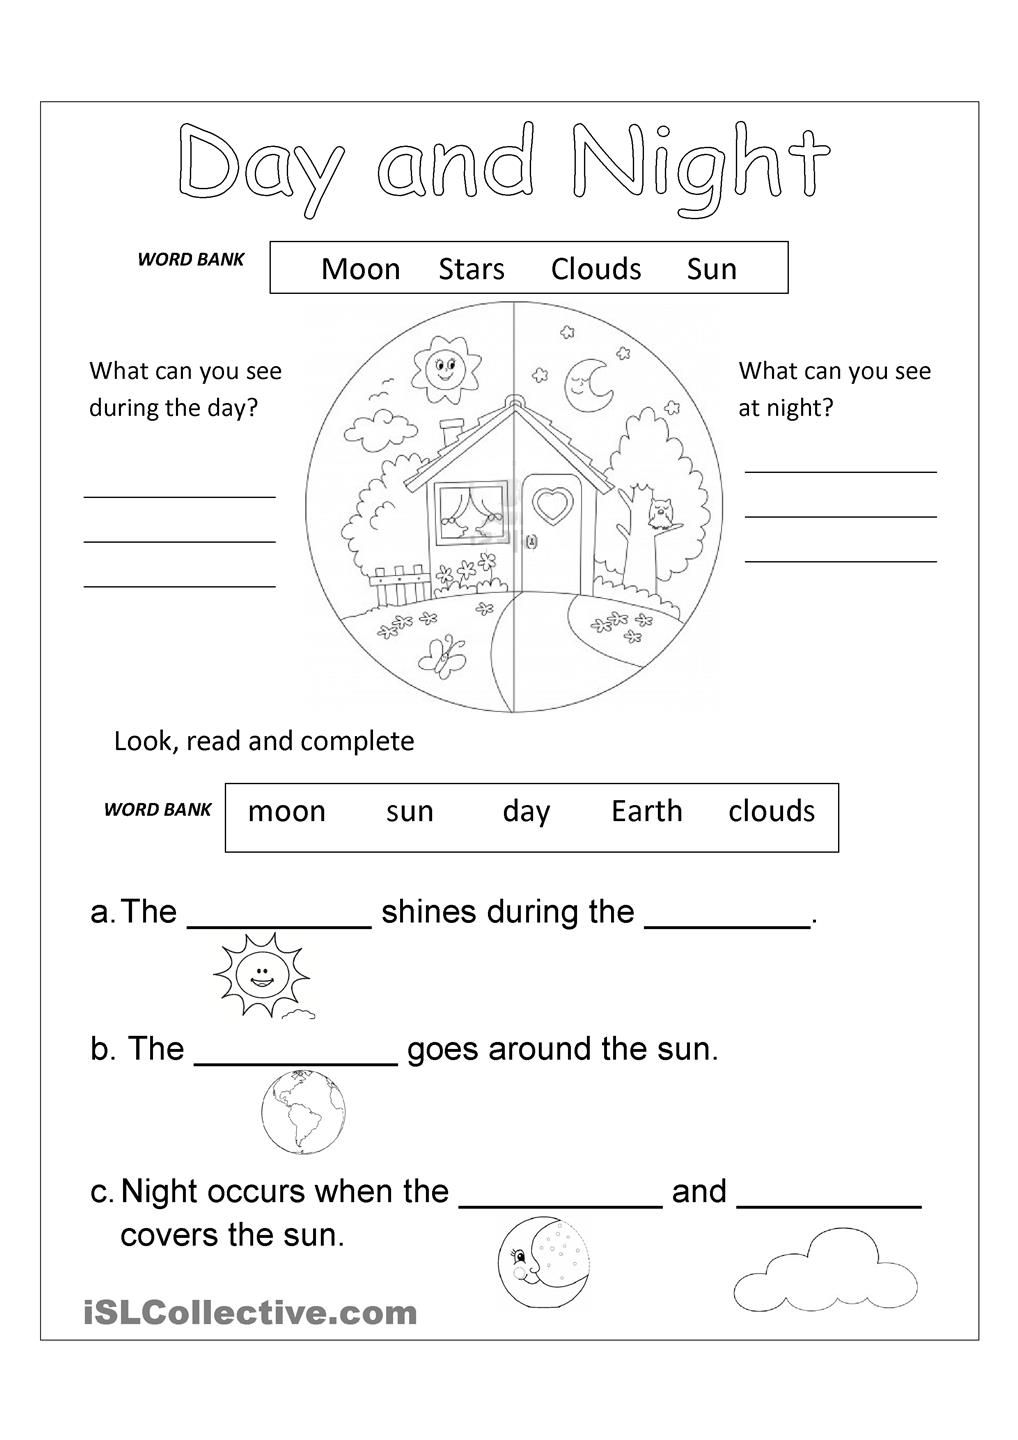 Day And Night Free Worksheet | Worksheets, Activities